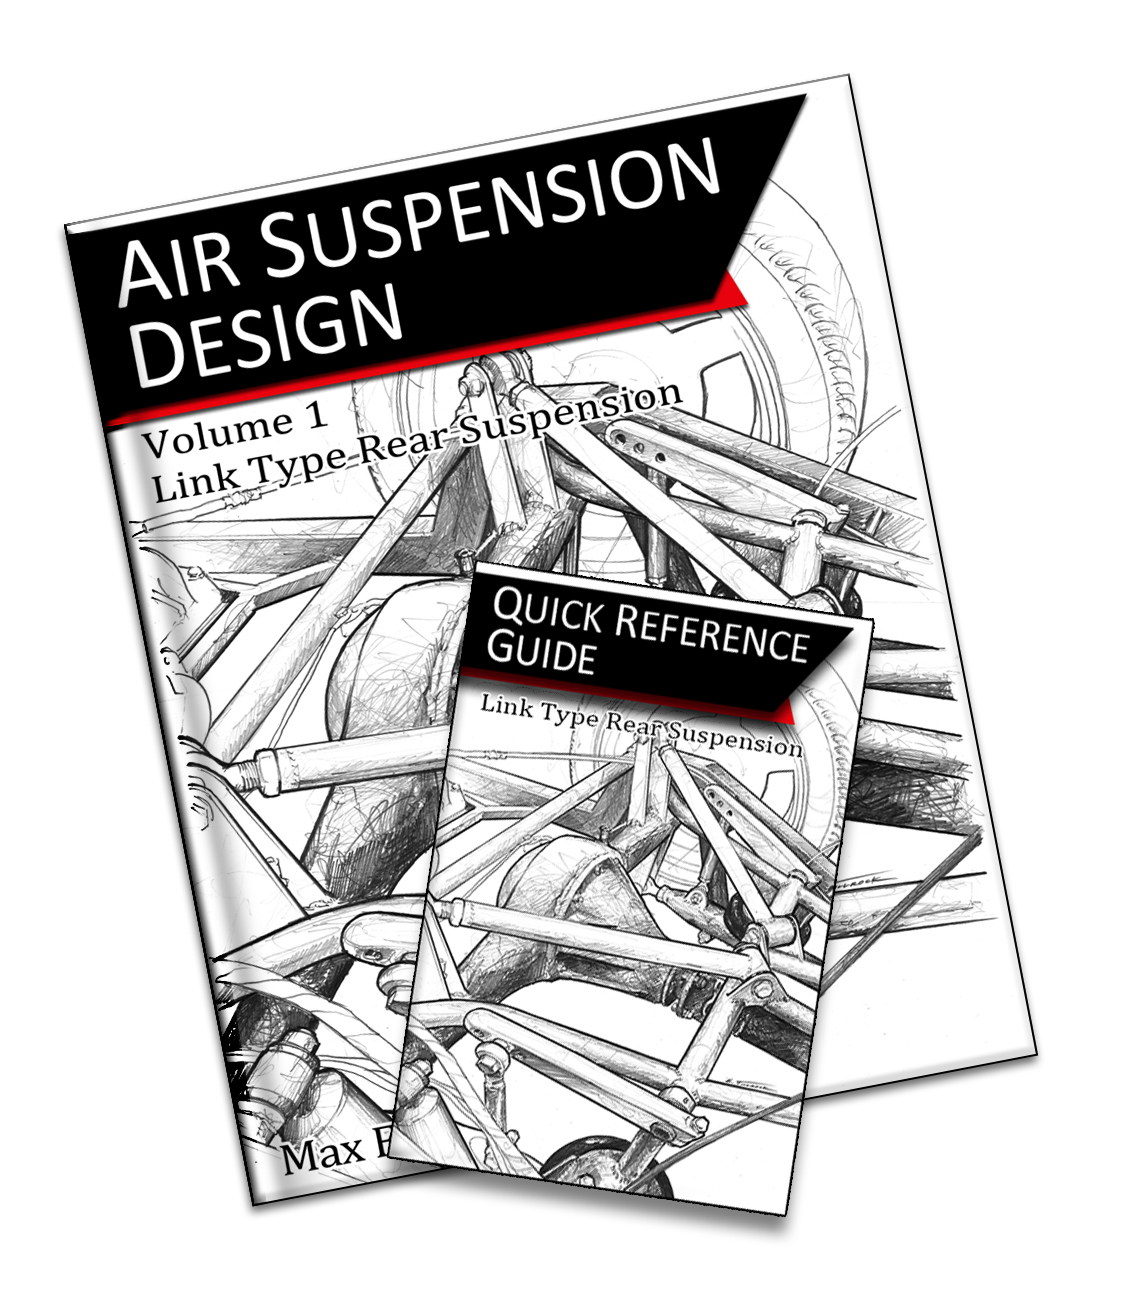 Air Suspension Vol. 1 Hardback w/ Reference Guide